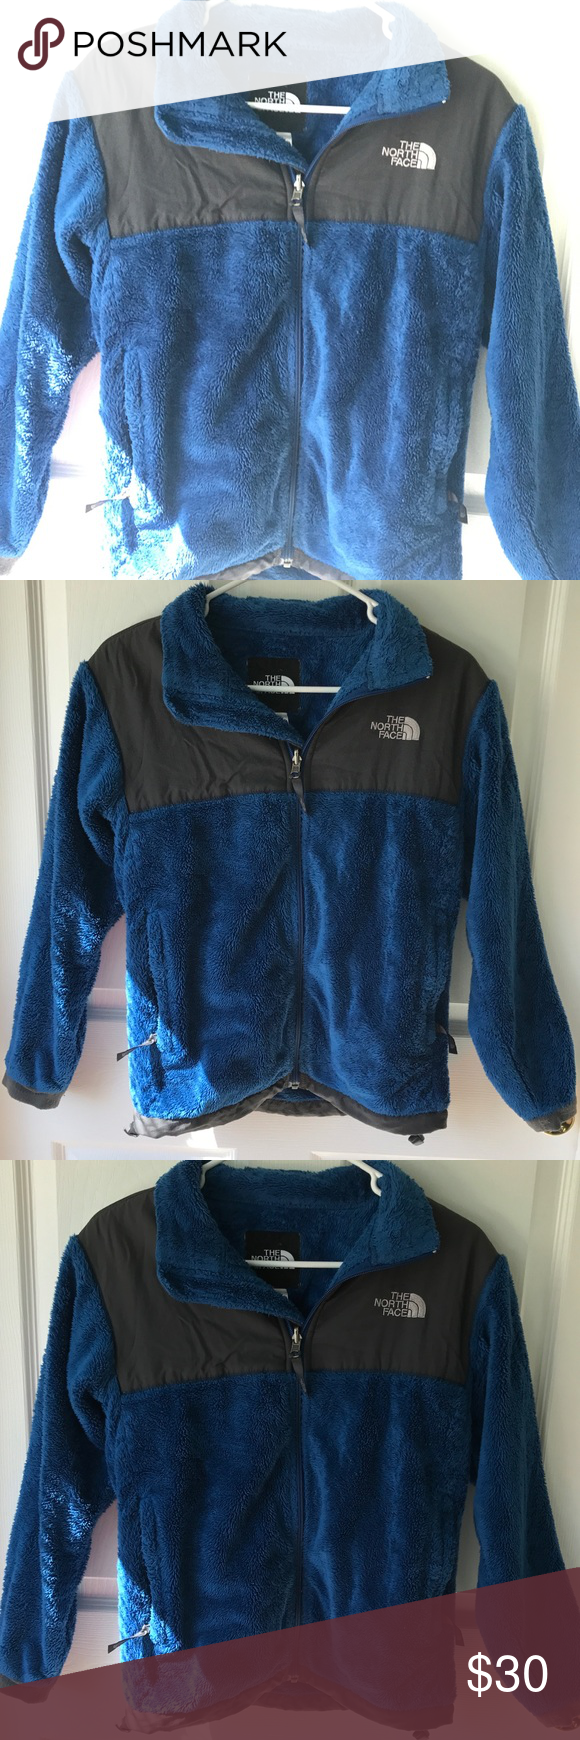 Youth size navy/gray north face jacket Used lots of life ...